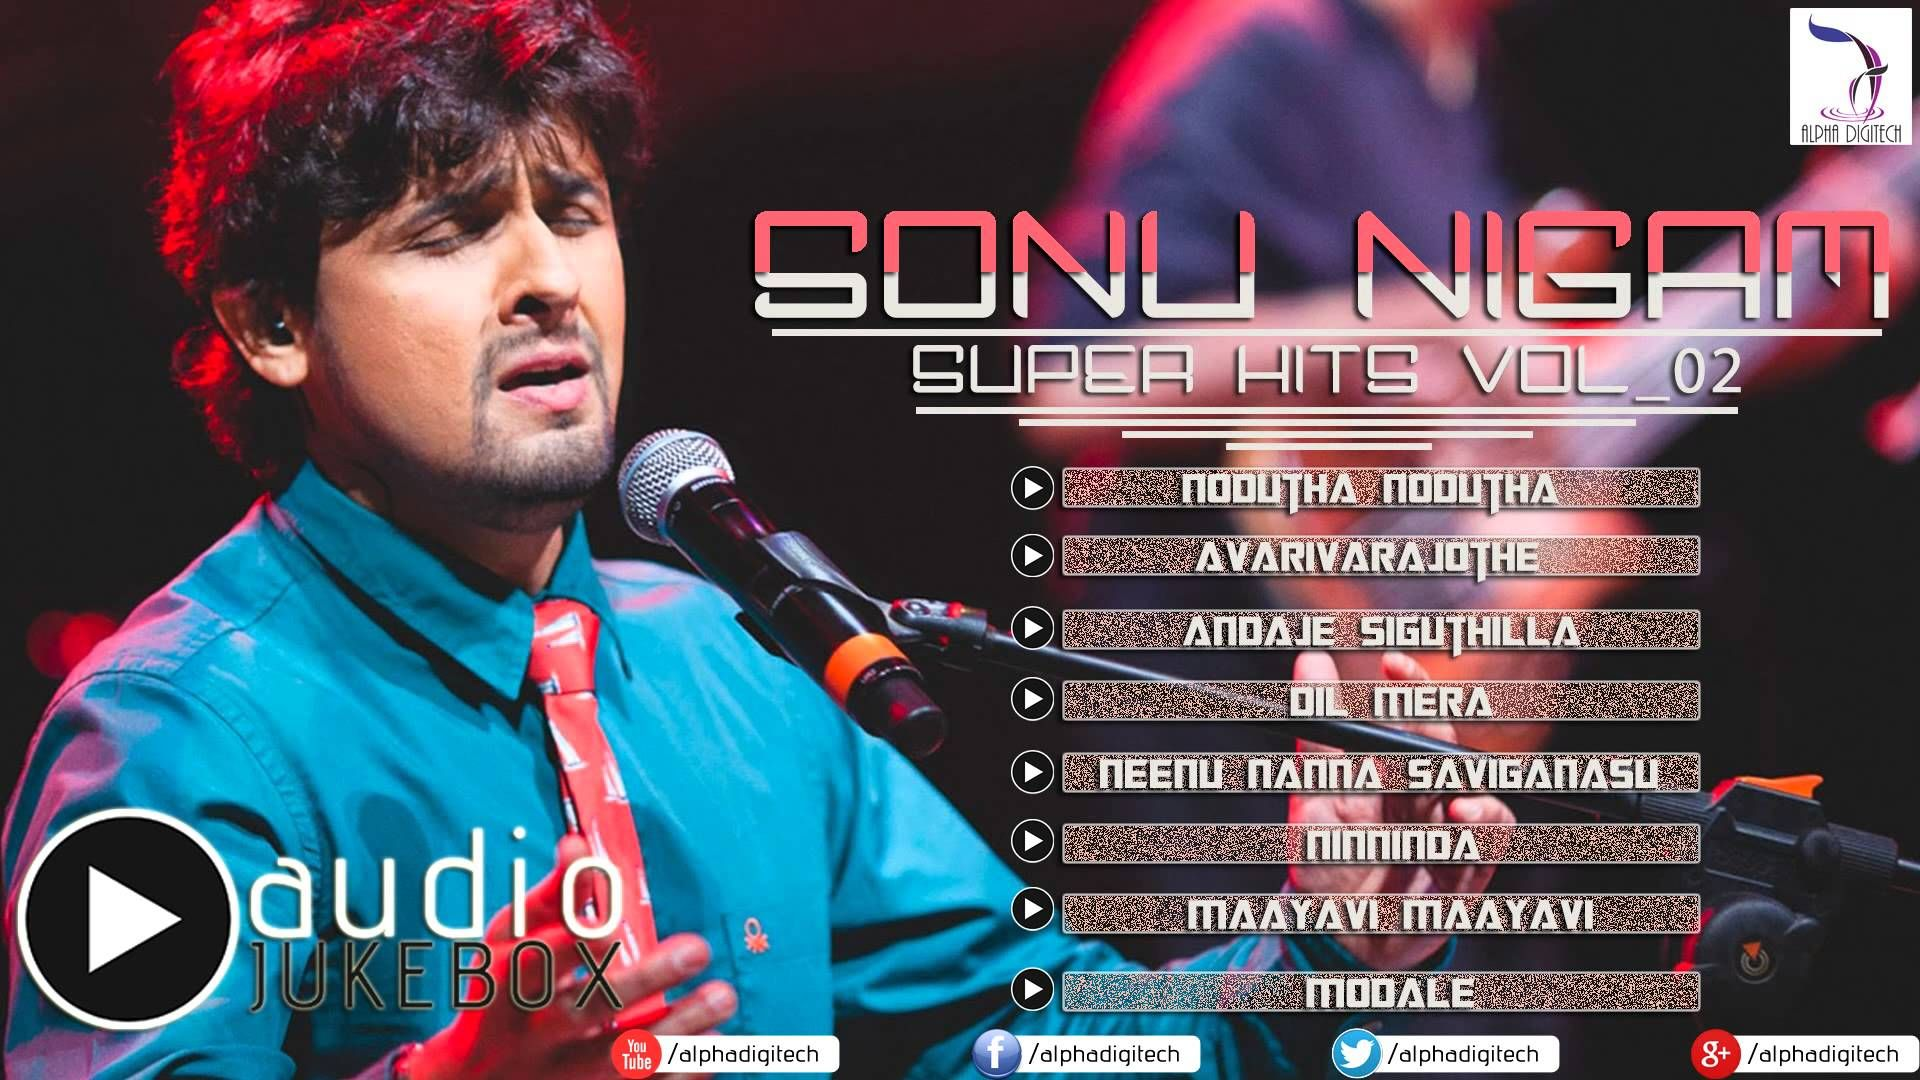 Sonu Nigam Kannada Songs | Audio Jukebox Vol_02 | Sonu Nigam Hits